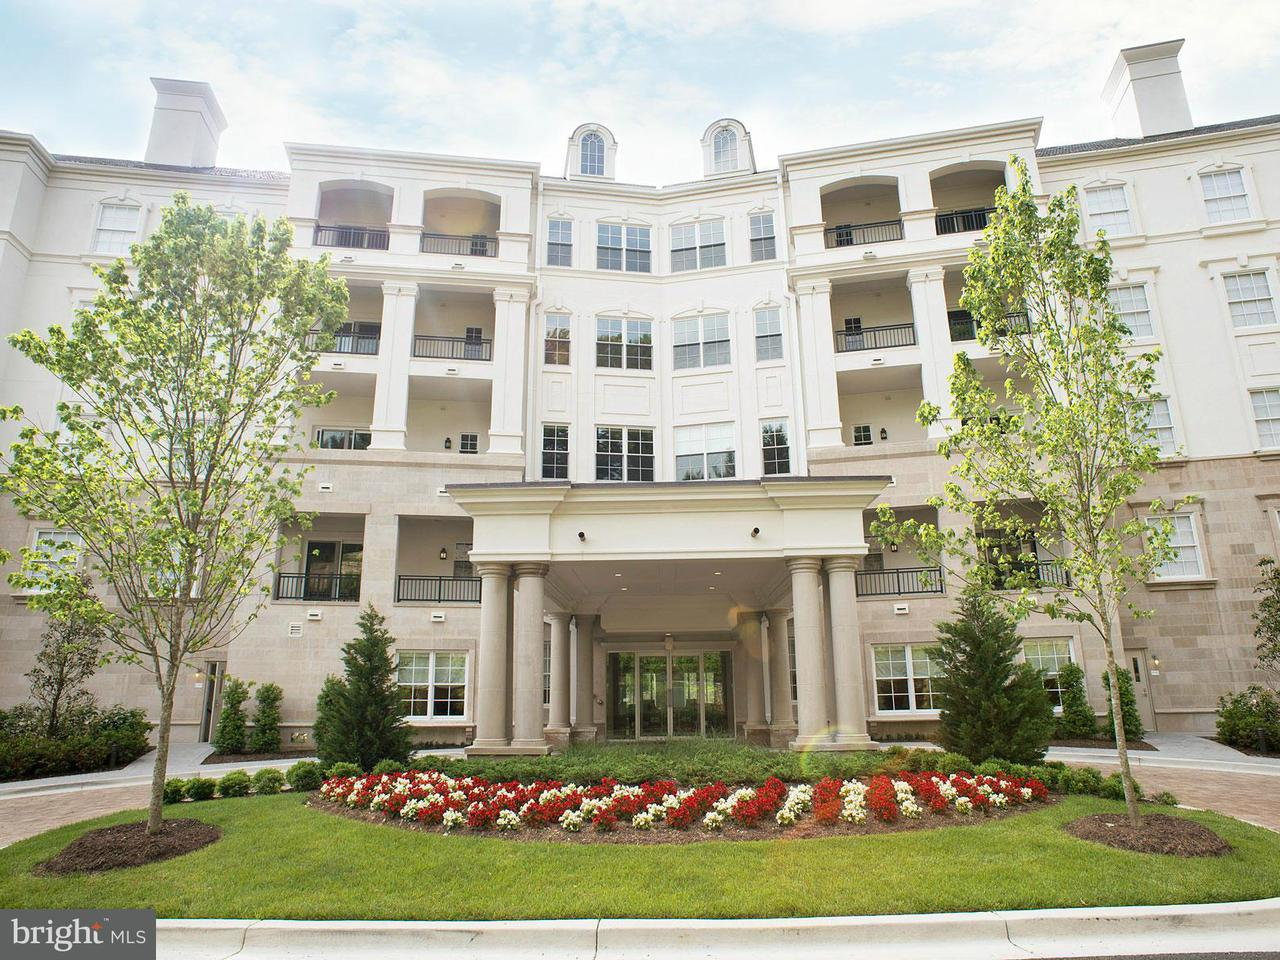 Single Family Home for Sale at 8111 RIVER RD #144 8111 RIVER RD #144 Bethesda, Maryland 20817 United States